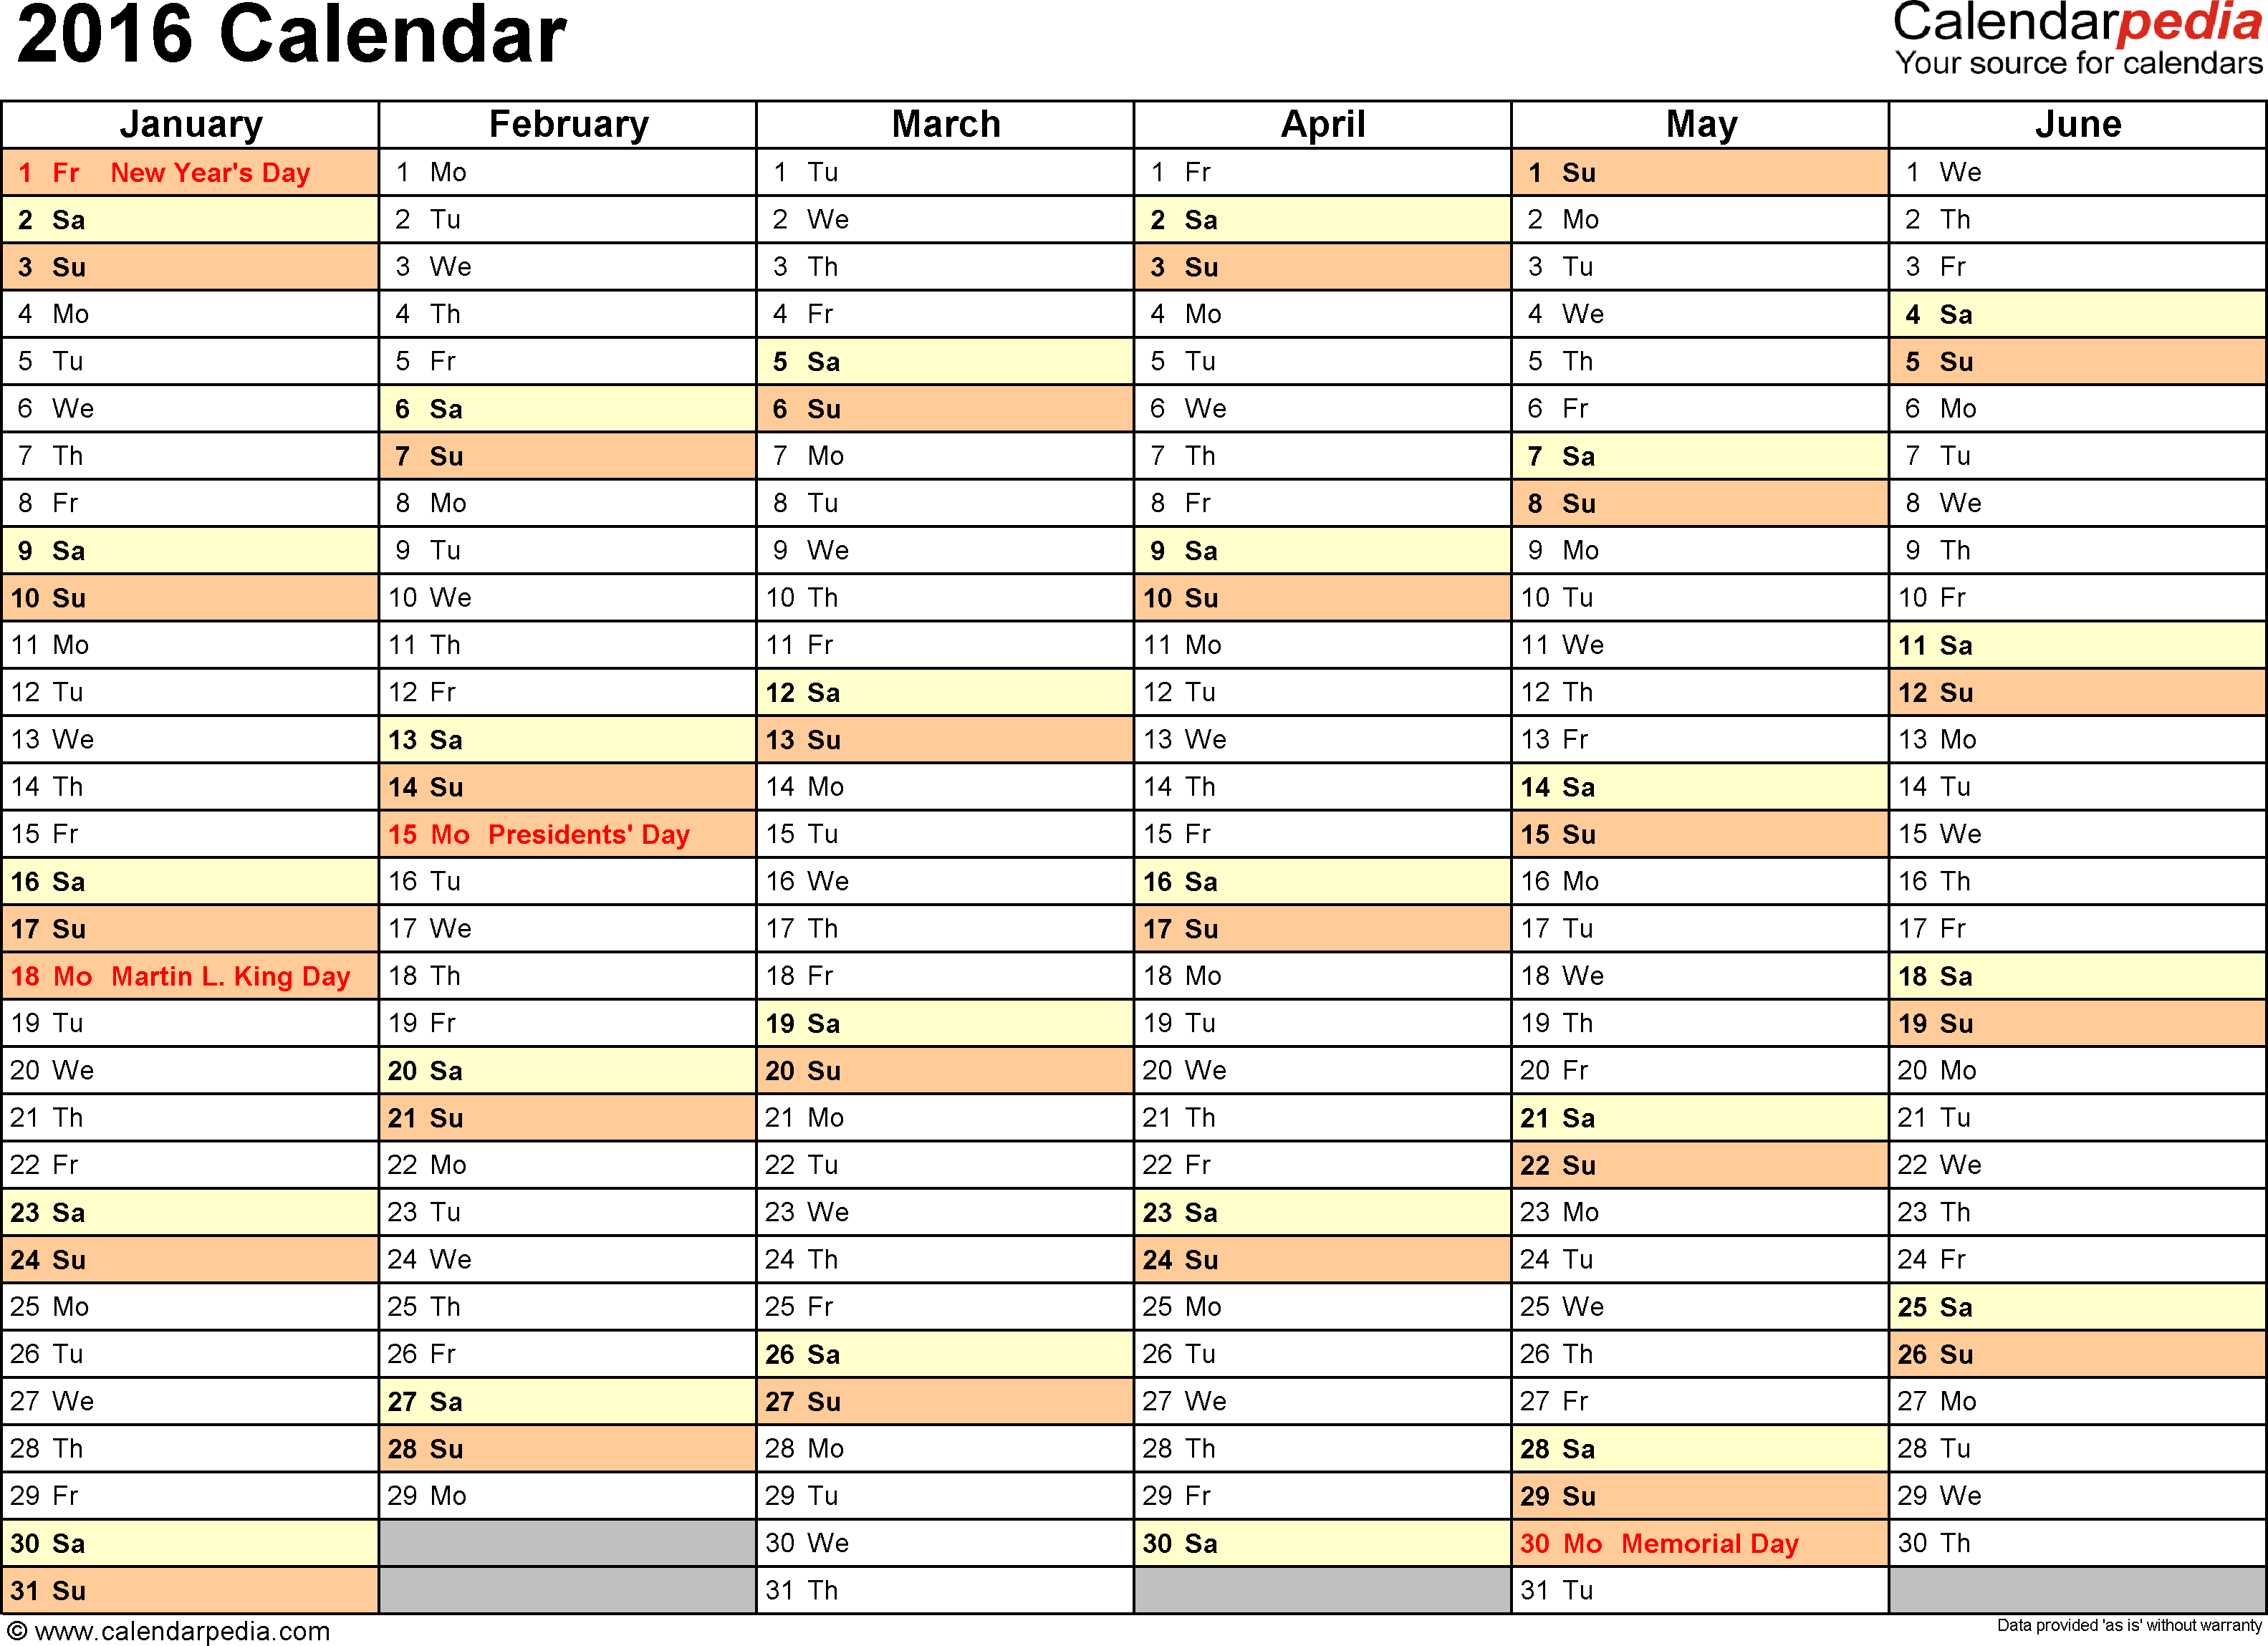 Template 3: 2016 Calendar for Excel, months horizontally, 2 pages, landscape orientation